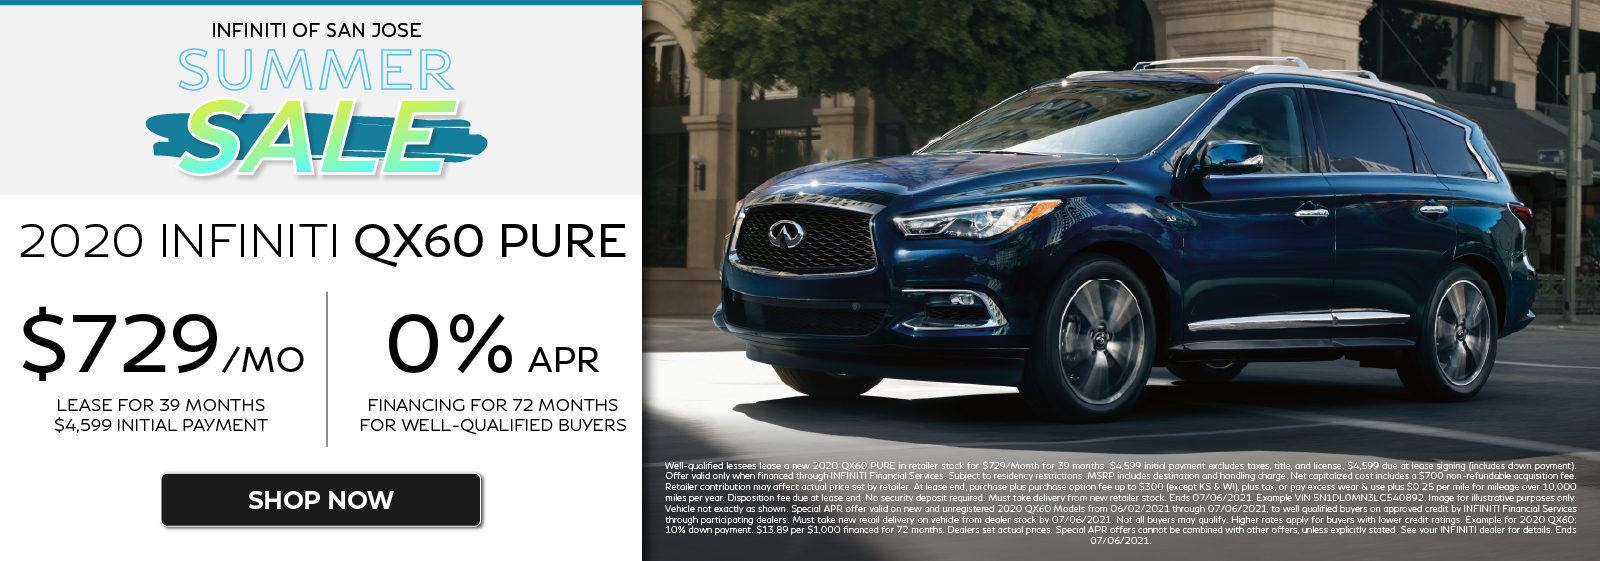 2020 QX60 PURE Lease and APR Offers. Click to shop now.